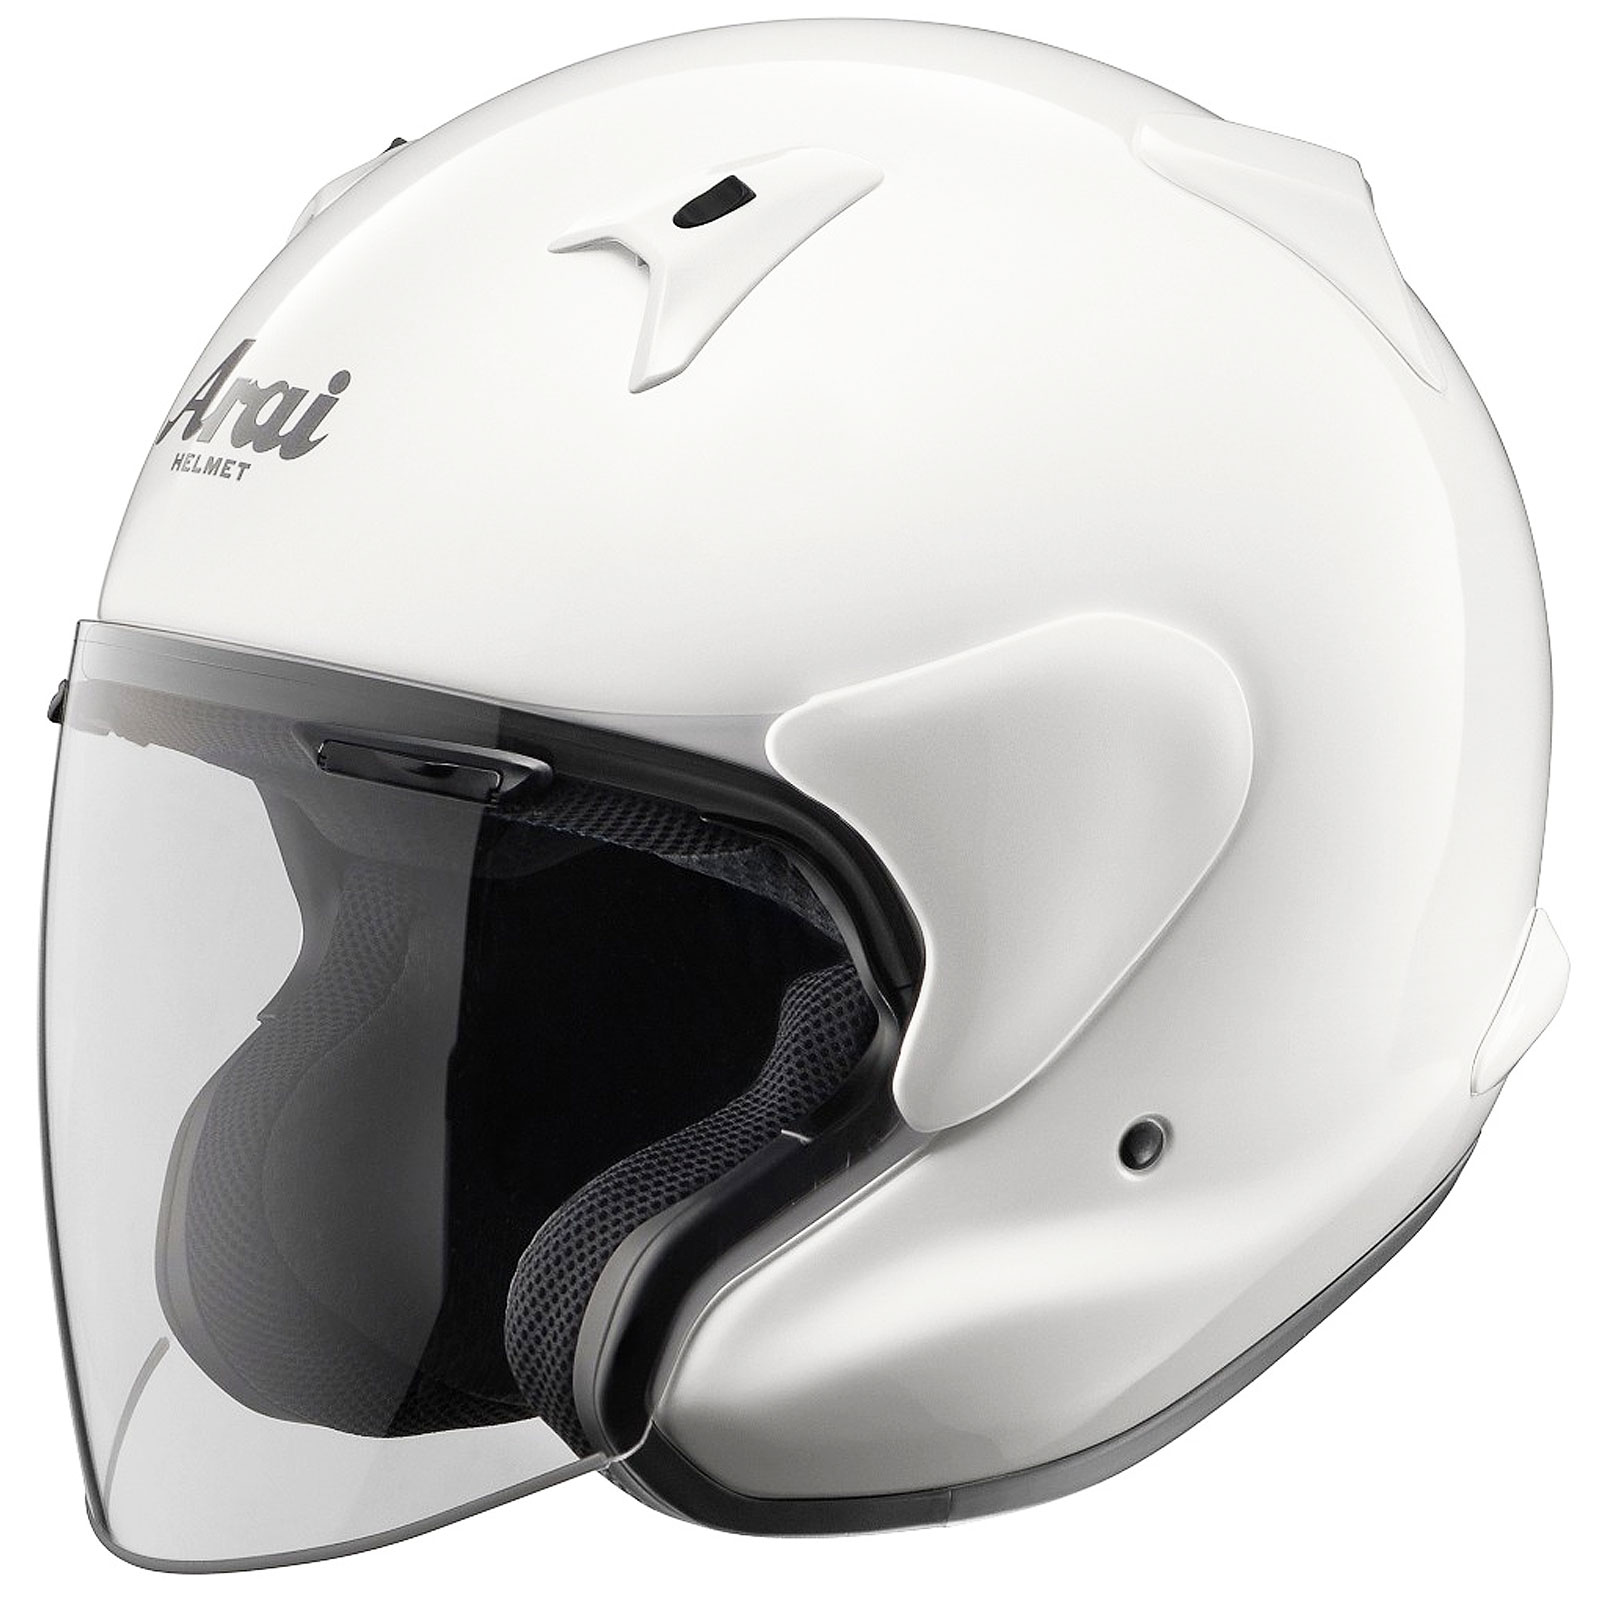 Arai x tend open face touring scooter motorcycle helmet diamond white small - Theusd tiny house the shortest way to freedom ...